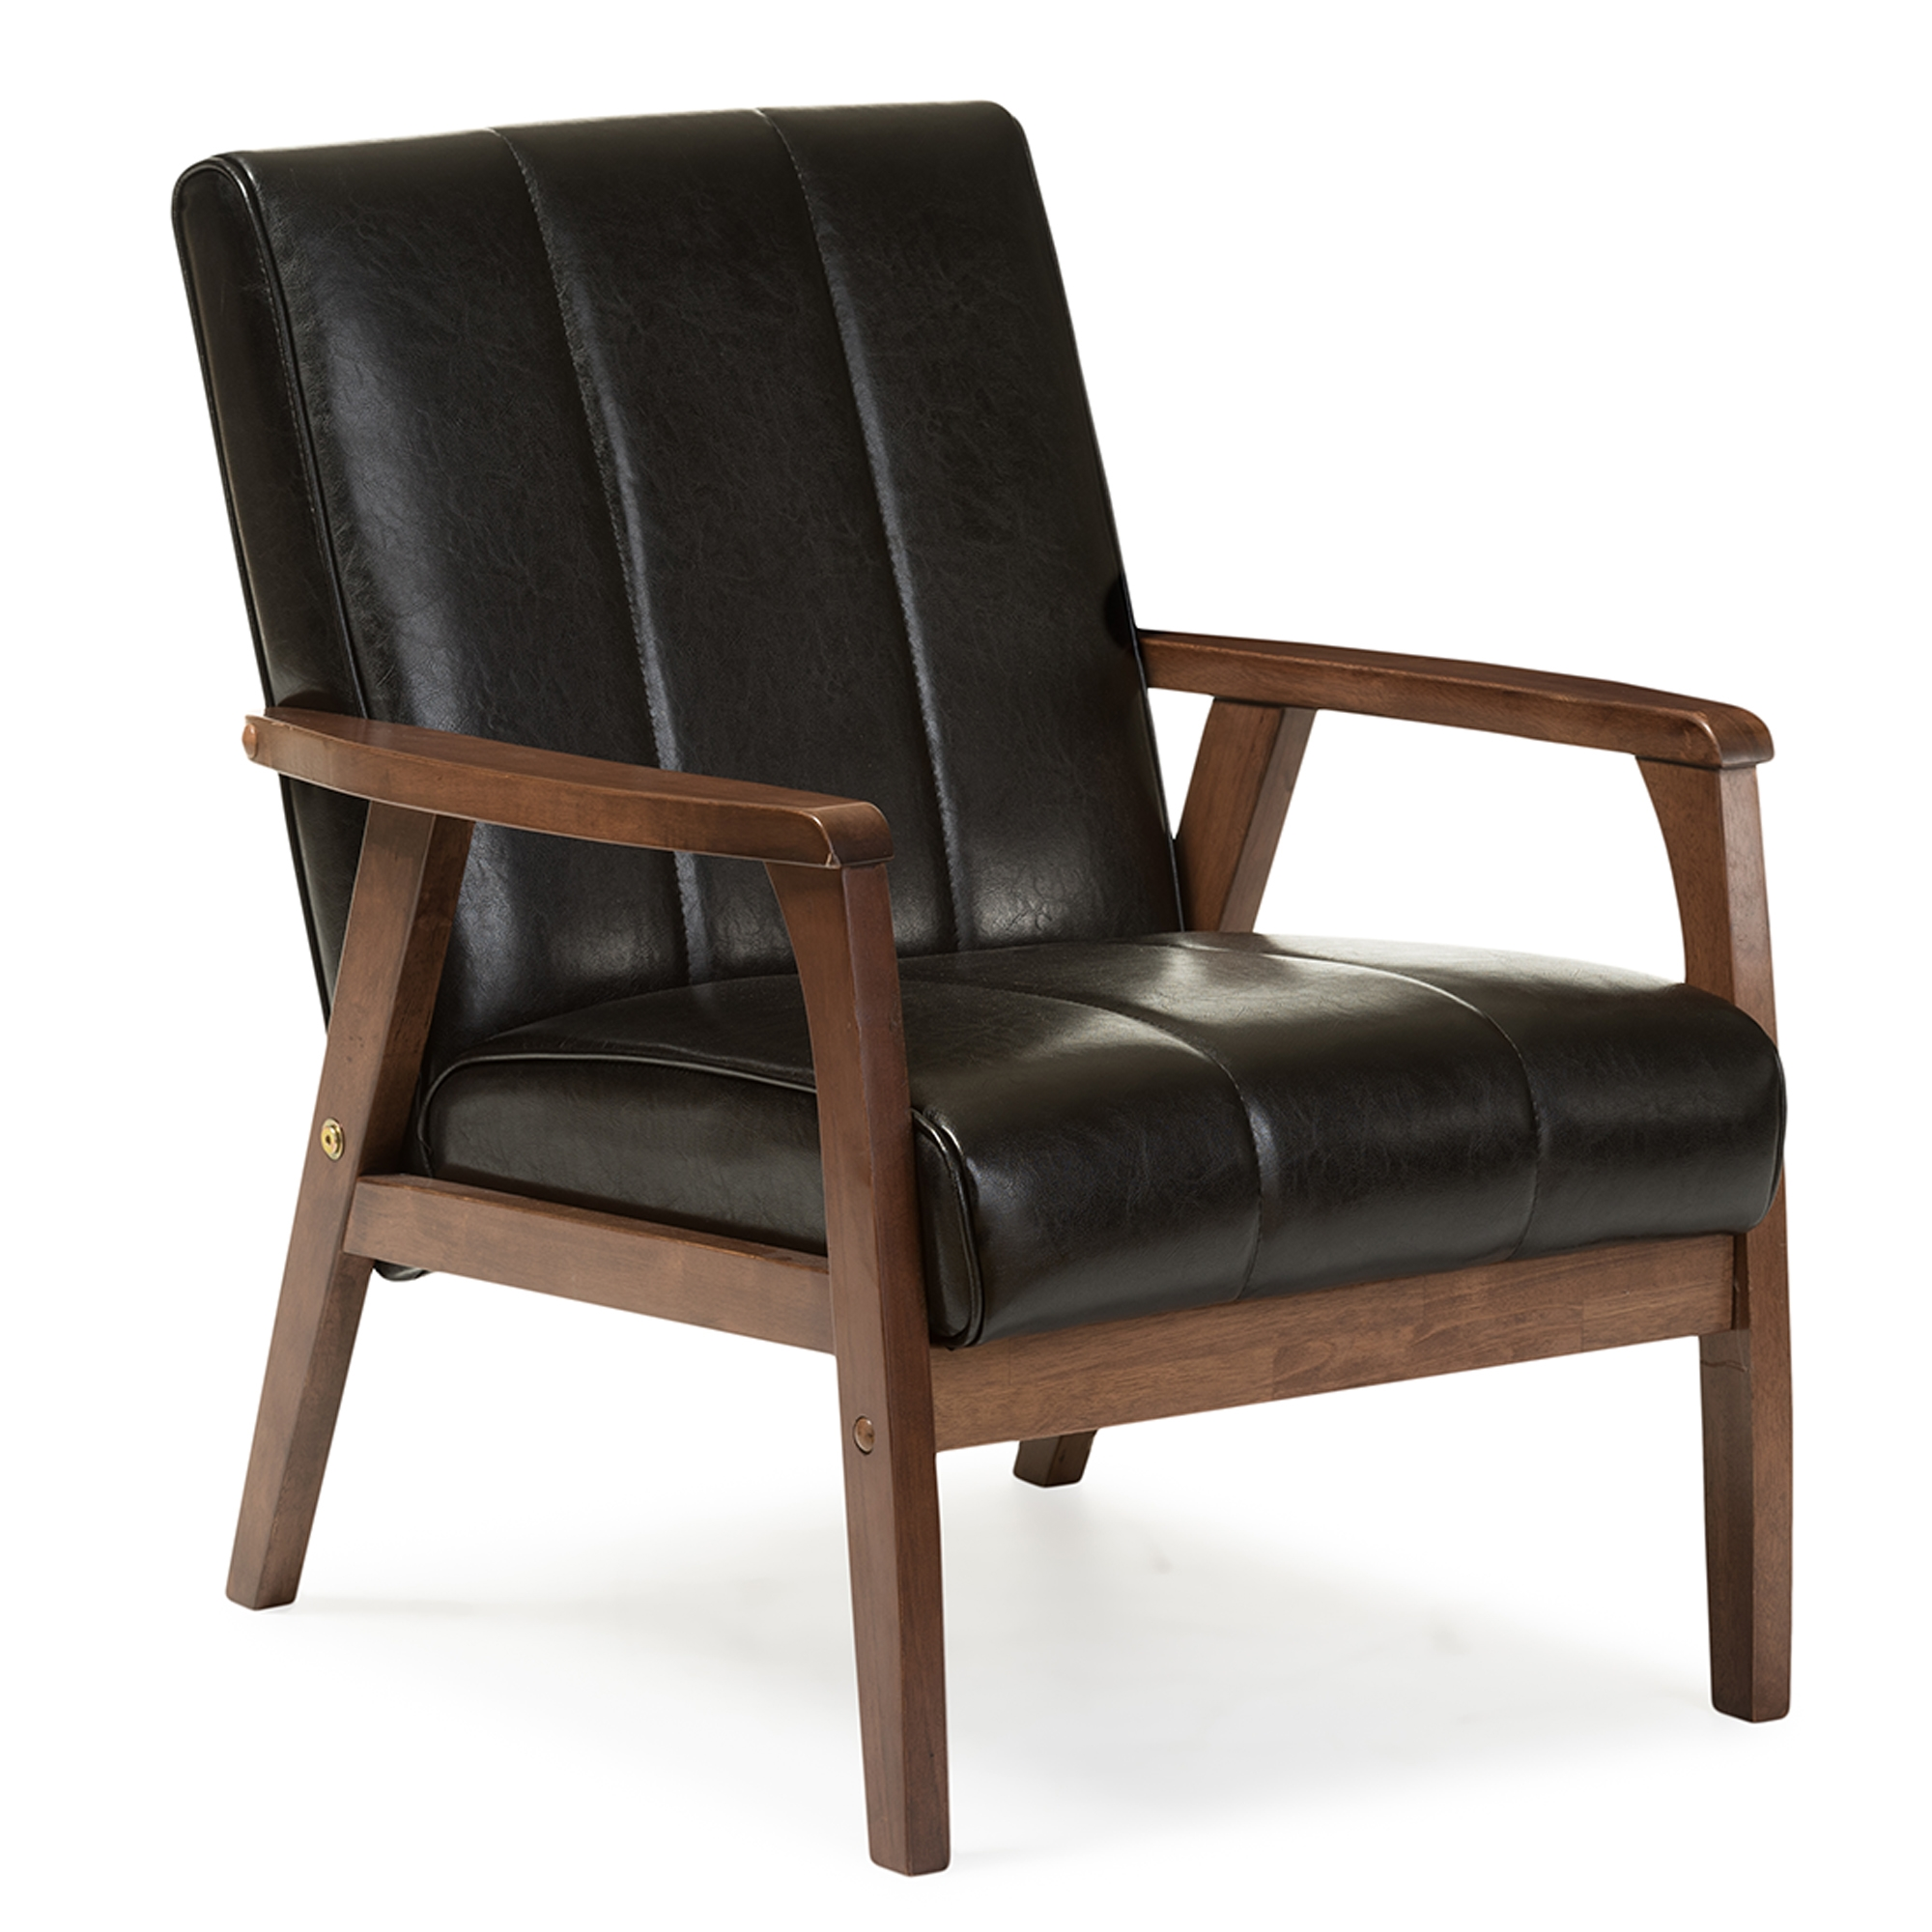 ... Baxton Studio Nikko Mid Century Modern Scandinavian Style Black Faux  Leather Wooden Lounge Chair ...